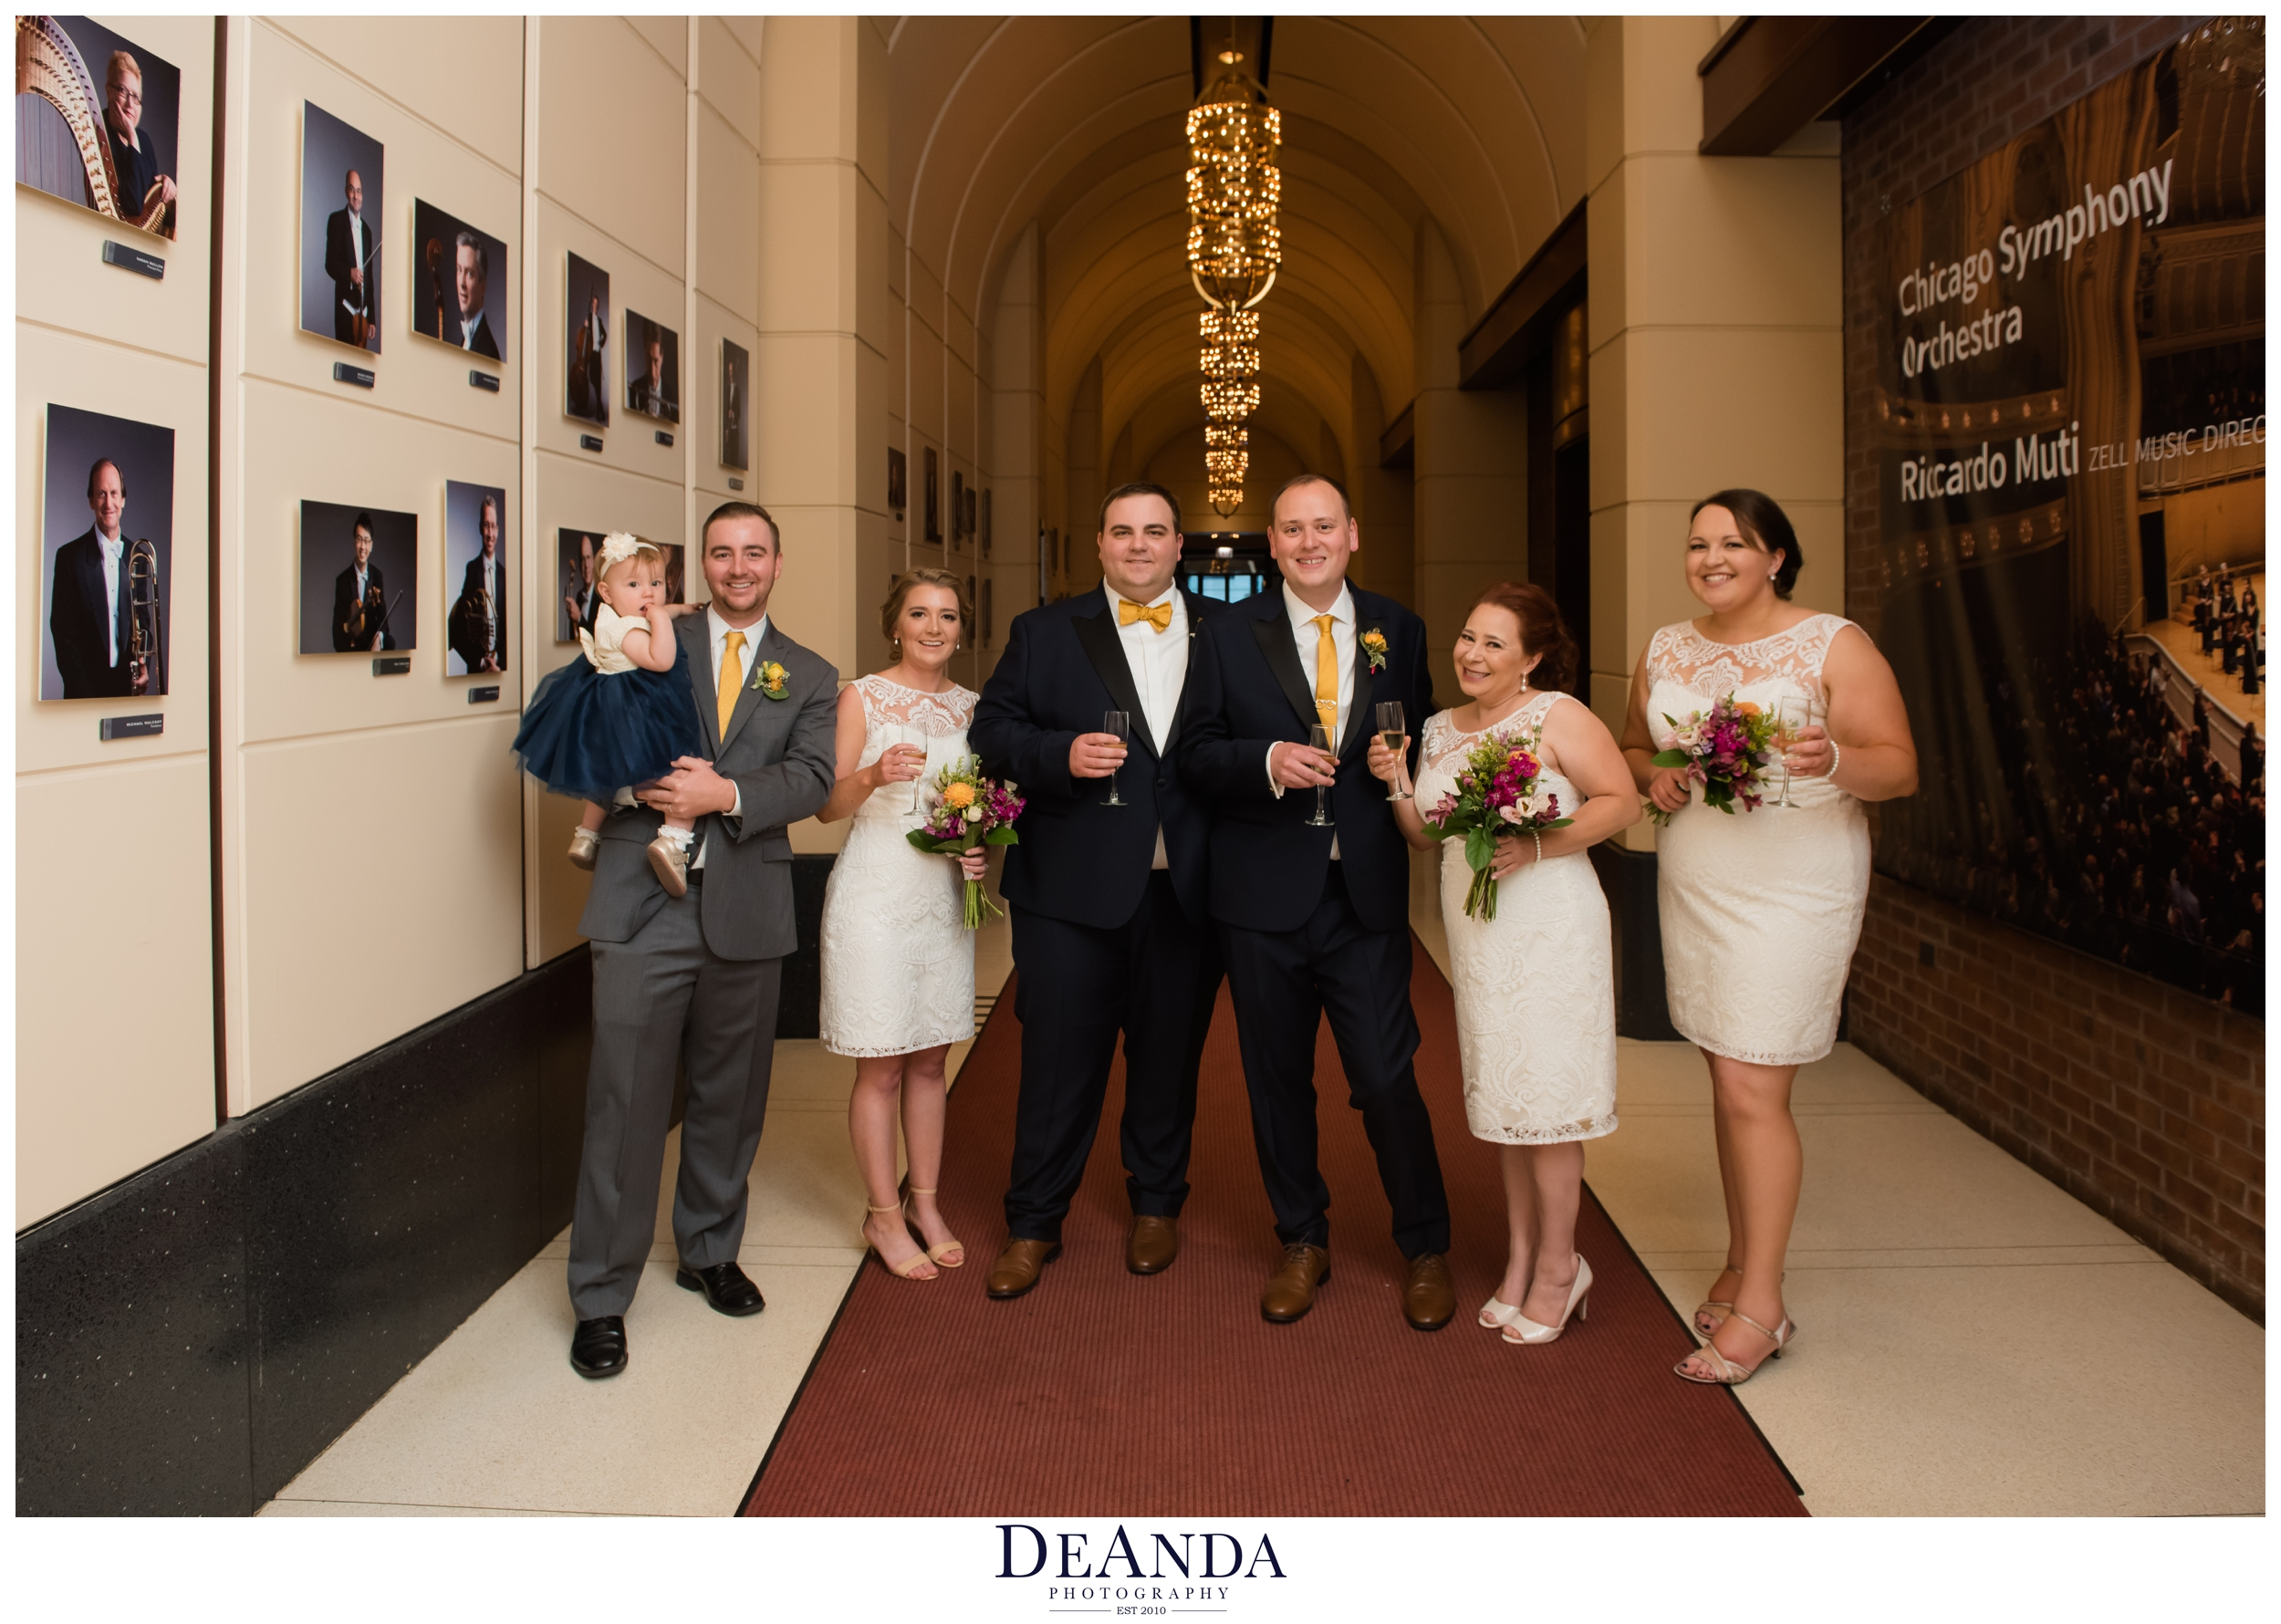 wedding party at chicago symphony center